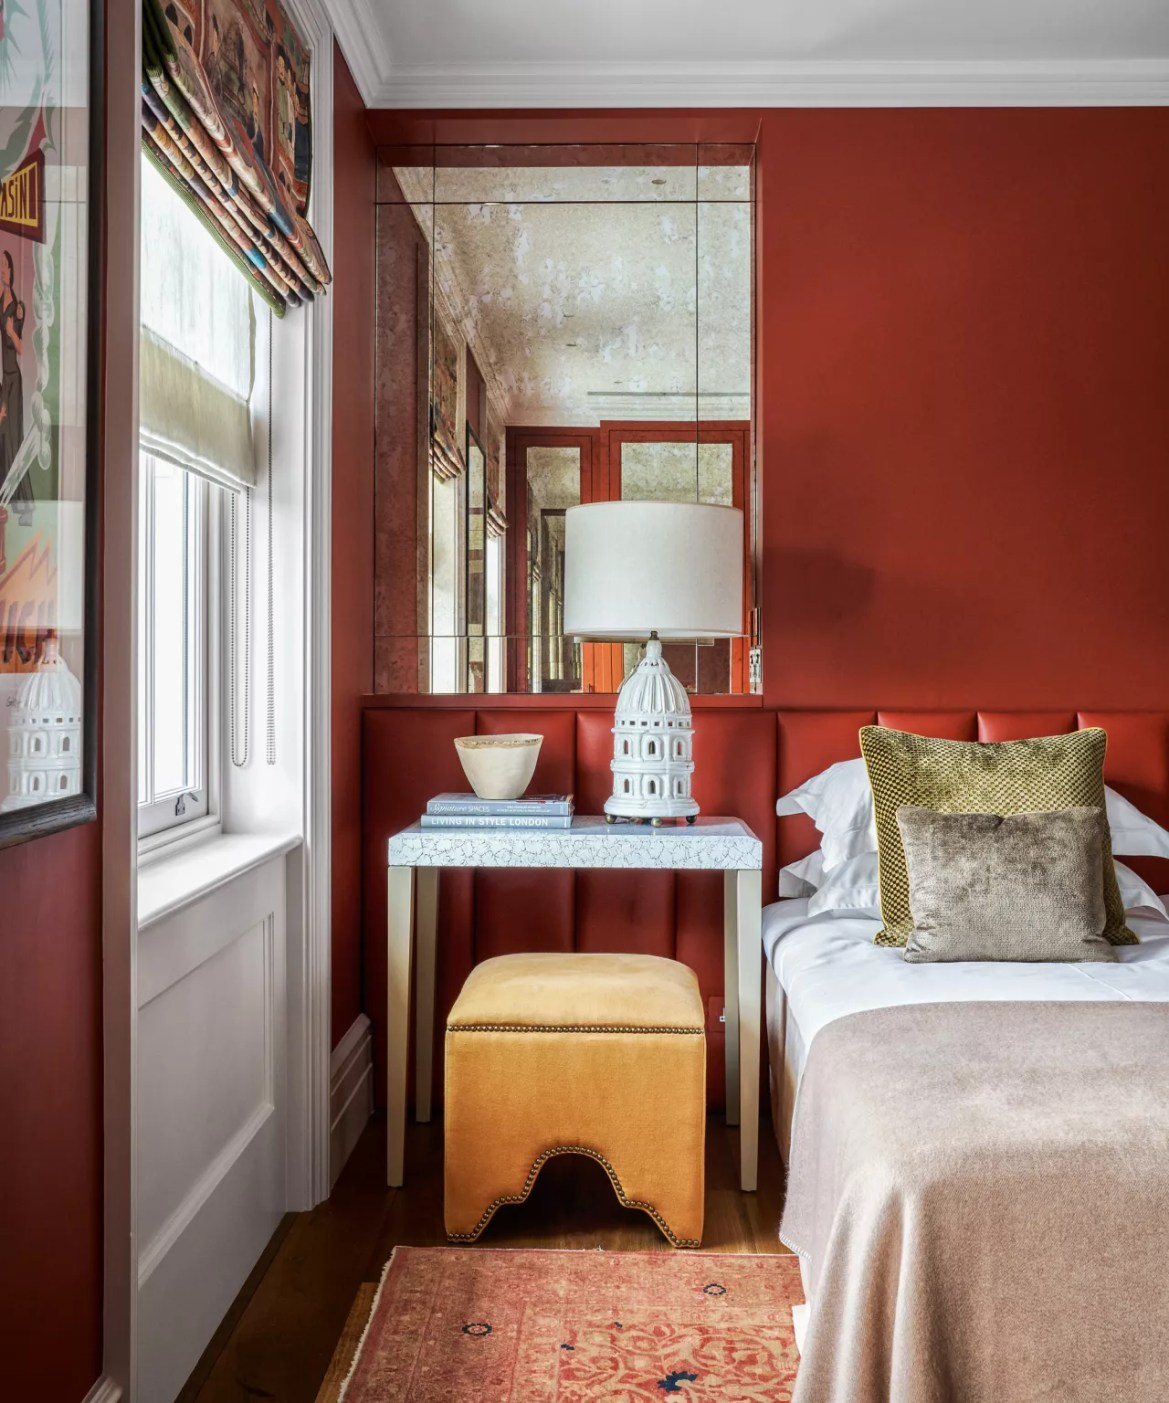 A fall color scheme in a bedroom with deep red walls, yellow stool and neutral bedding